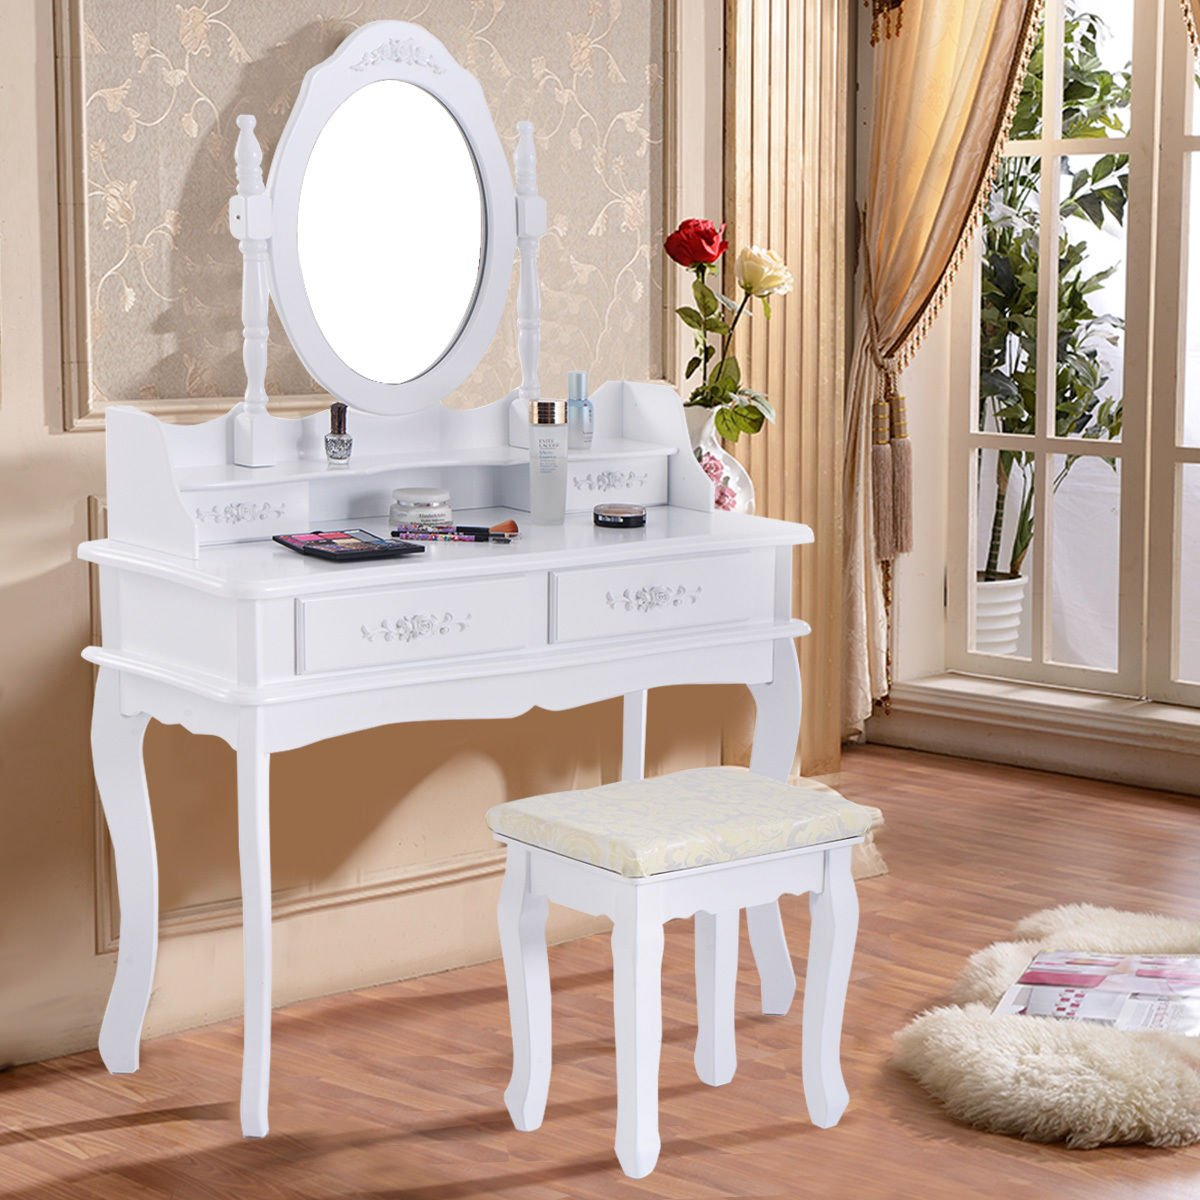 New White Vanity Jewelry Makeup Dressing Table Set W/Stool 4 Drawer Mirror Wood Desk by Furinho Bush